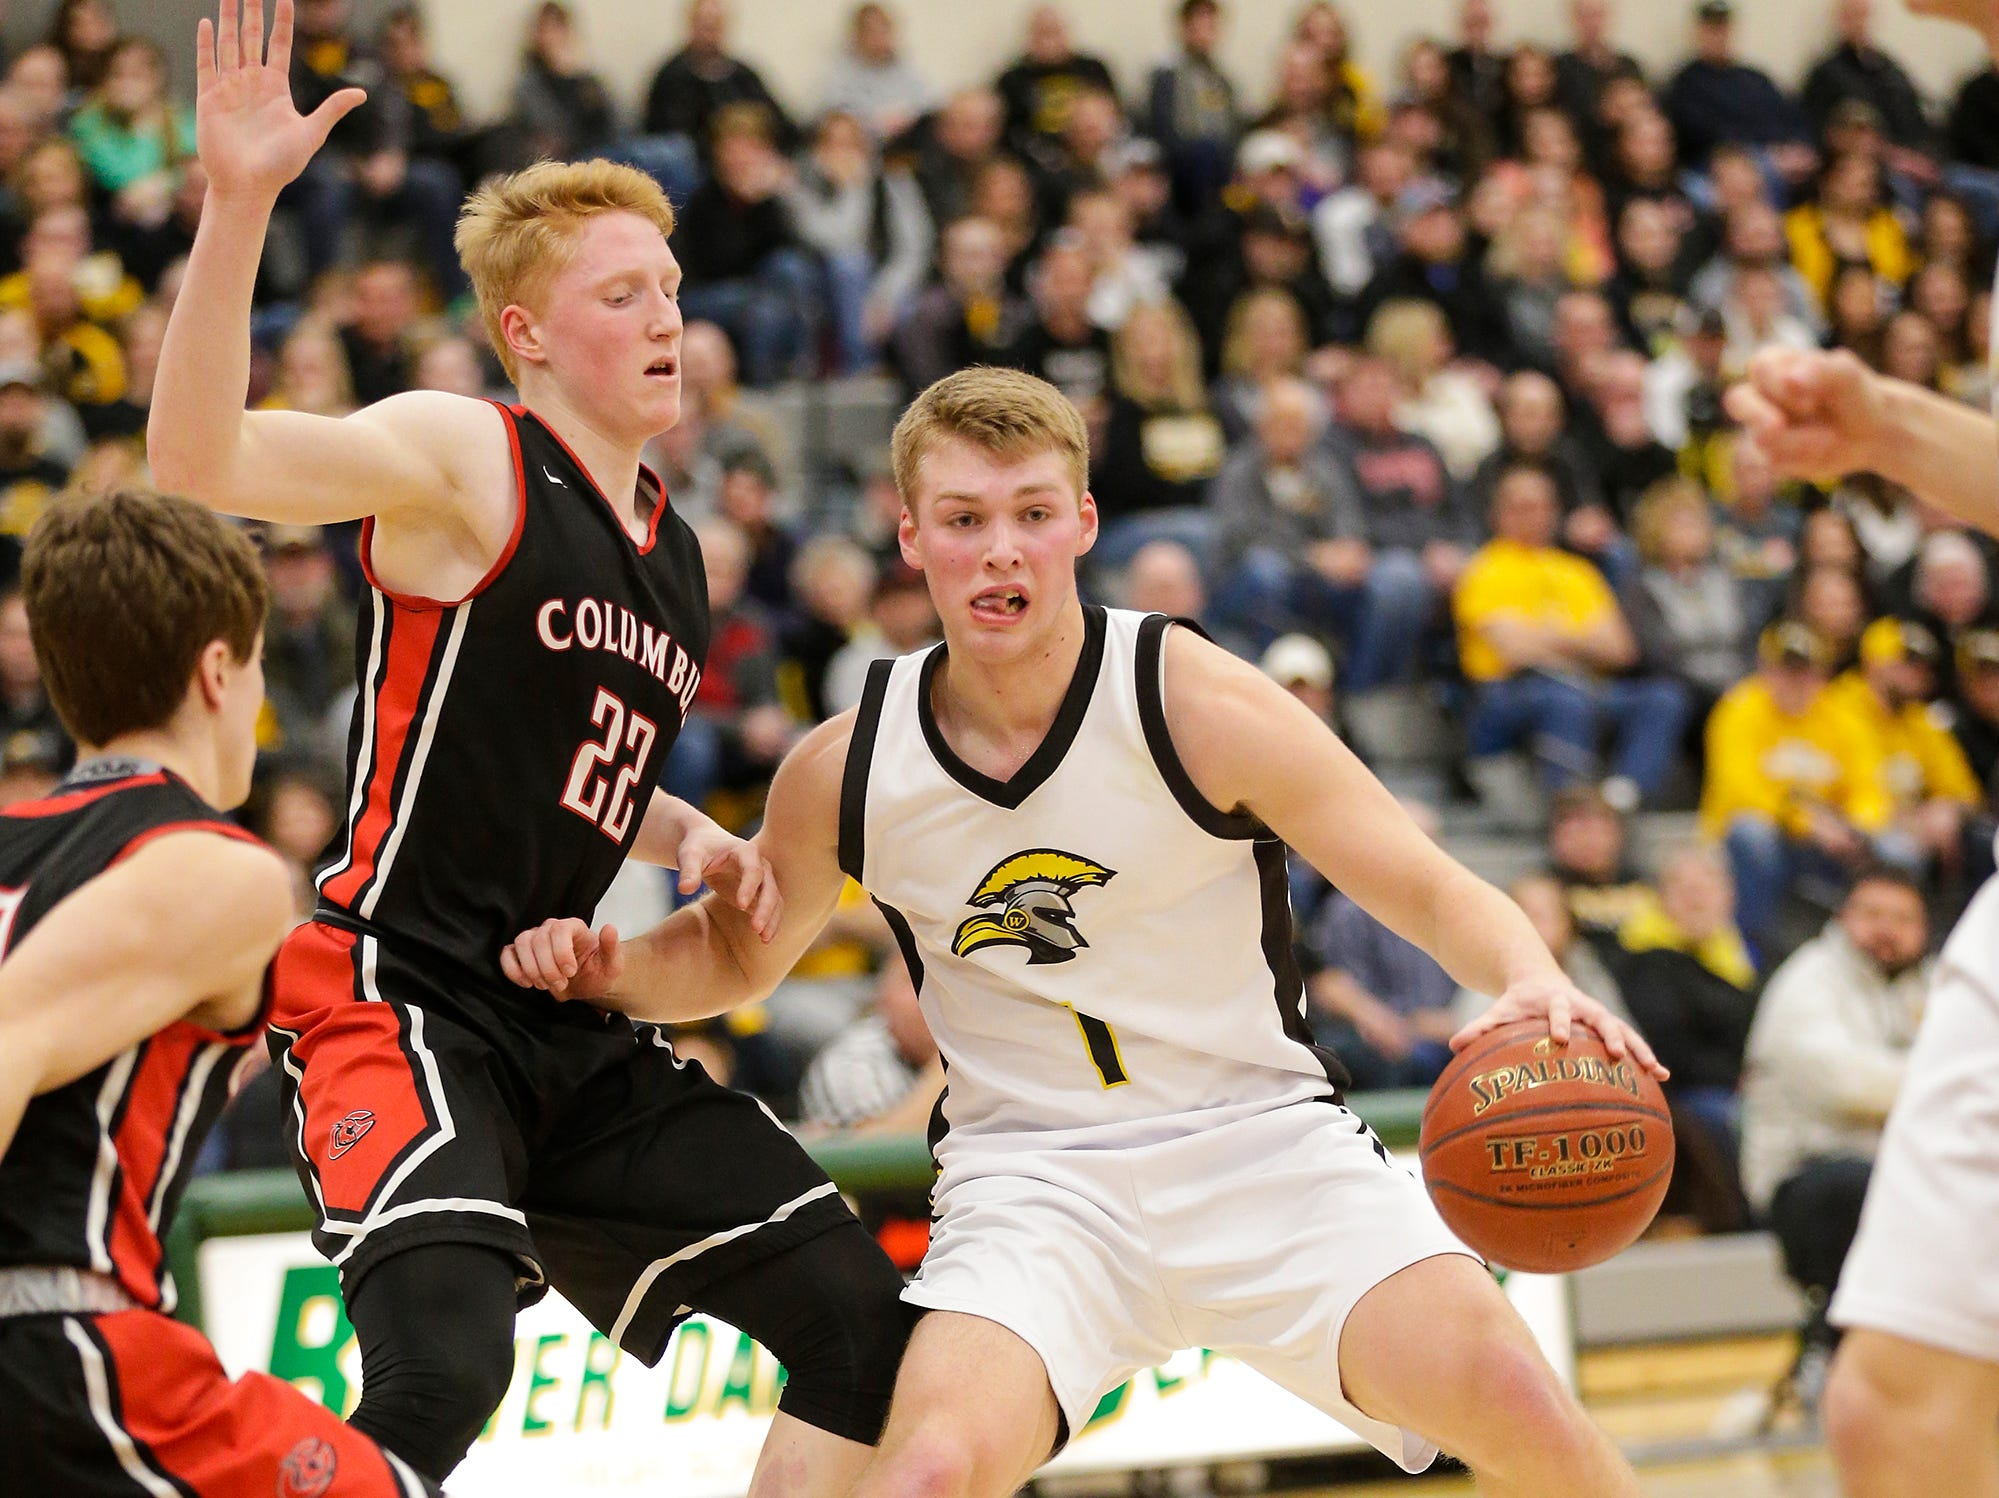 Waupun High School boys basketball's Marcus Domask (1) goes up against Columbus High School's Trent Casper on defense during their WIAA division 3 sectional semi-final game Thursday, March 7, 2019 in Beaver Dam, Wis. Waupun won the game 79-36. Doug Raflik/USA TODAY NETWORK-Wisconsin